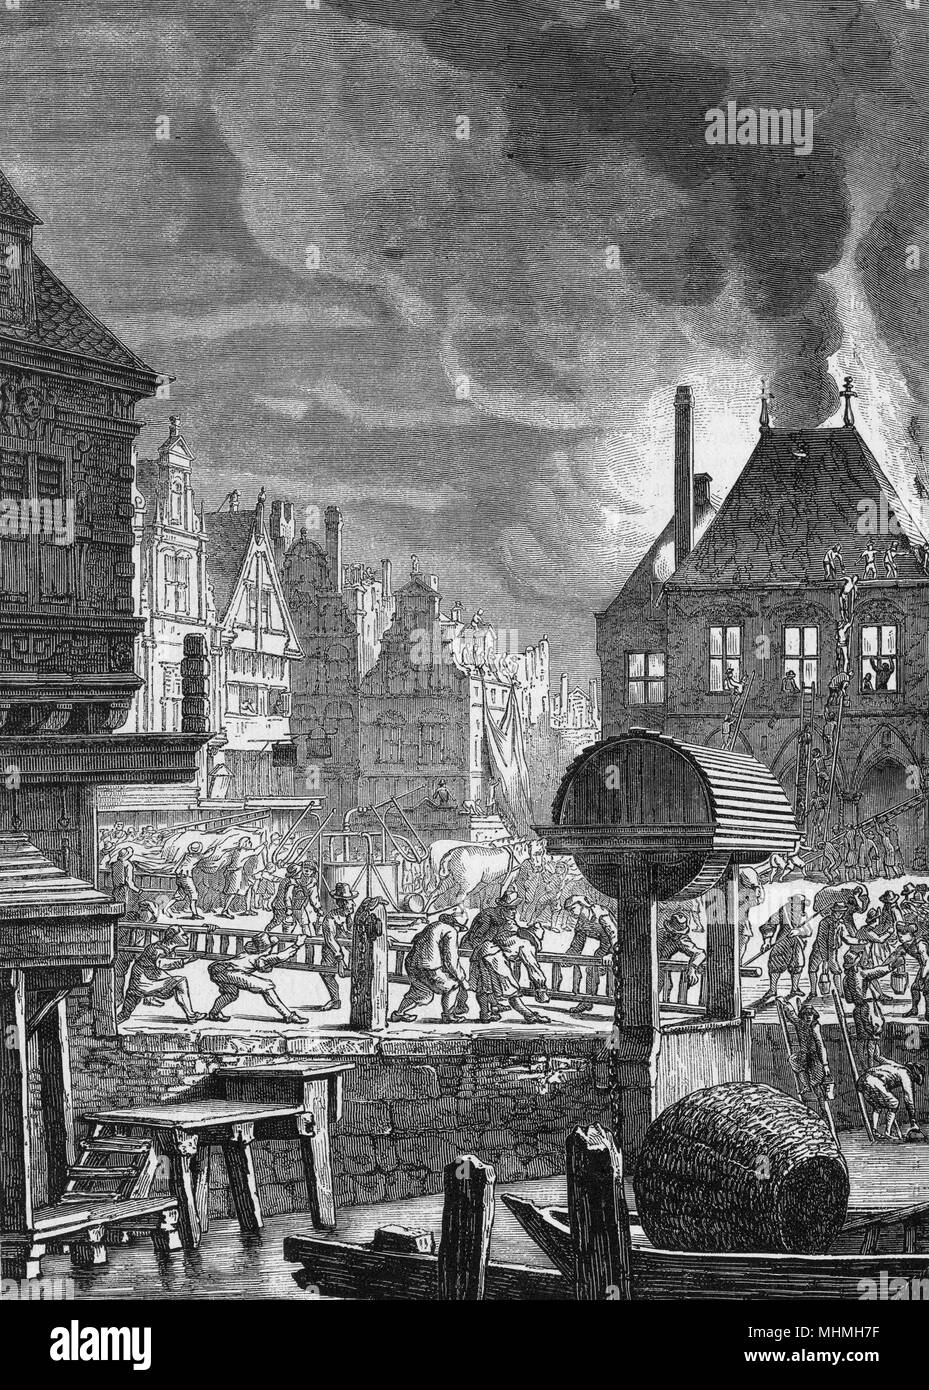 Fire-fighters attempt to extinguish a fire in the centre of Amsterdam      Date: 17th Century - Stock Image